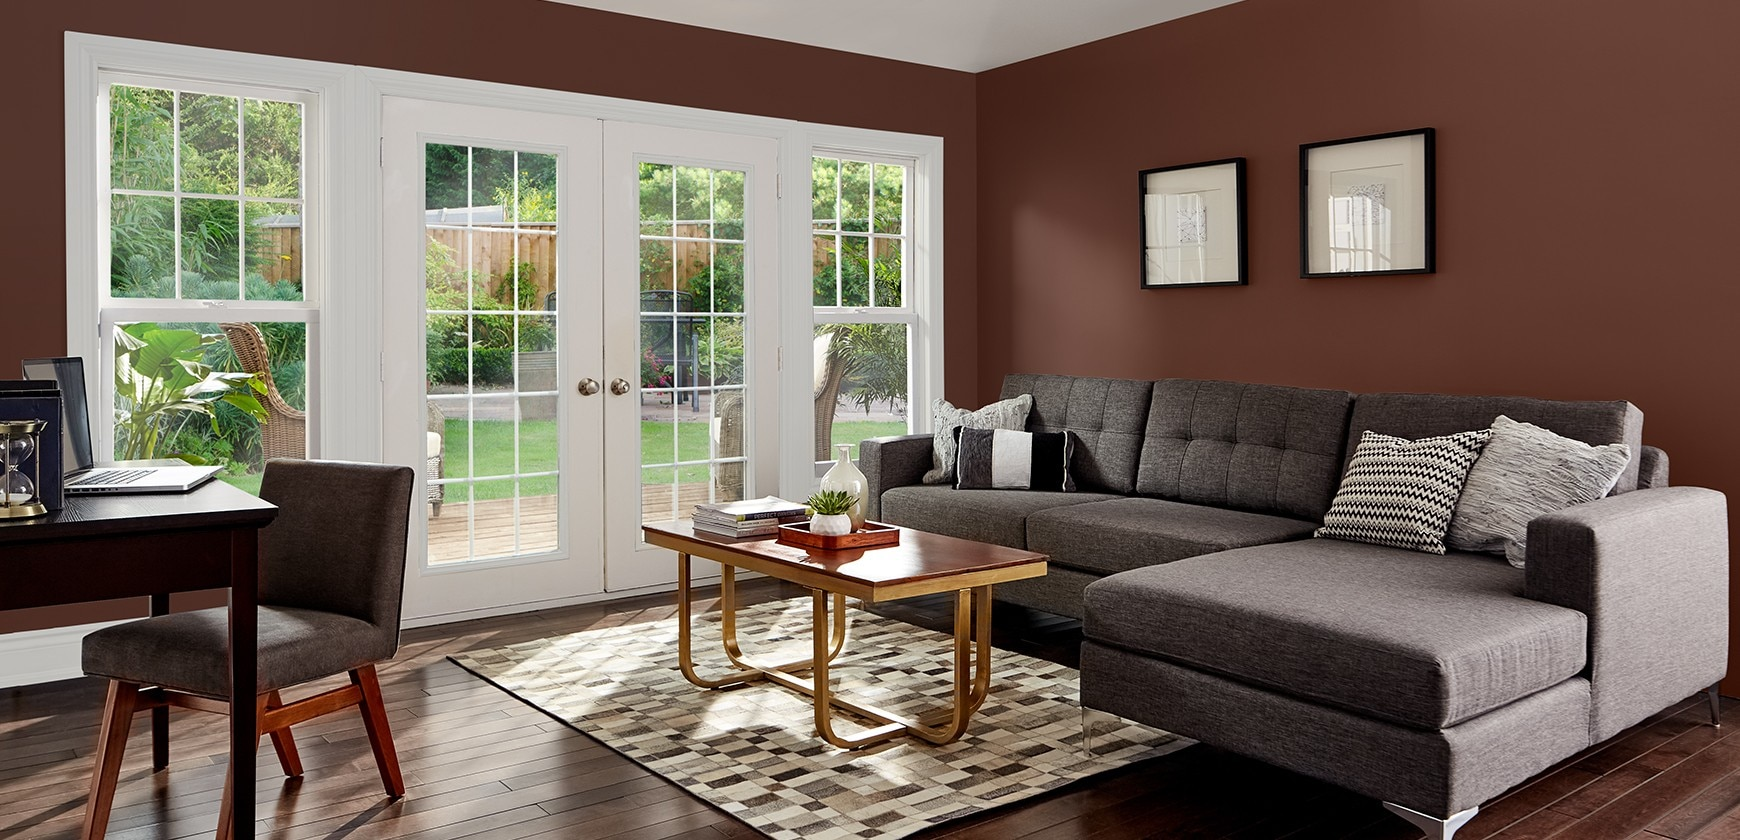 paint projects ideas canadian tire insp spring premier room that inspire outdoor side table create warm family rooms with cool lamps dining decor blue painted coffee target